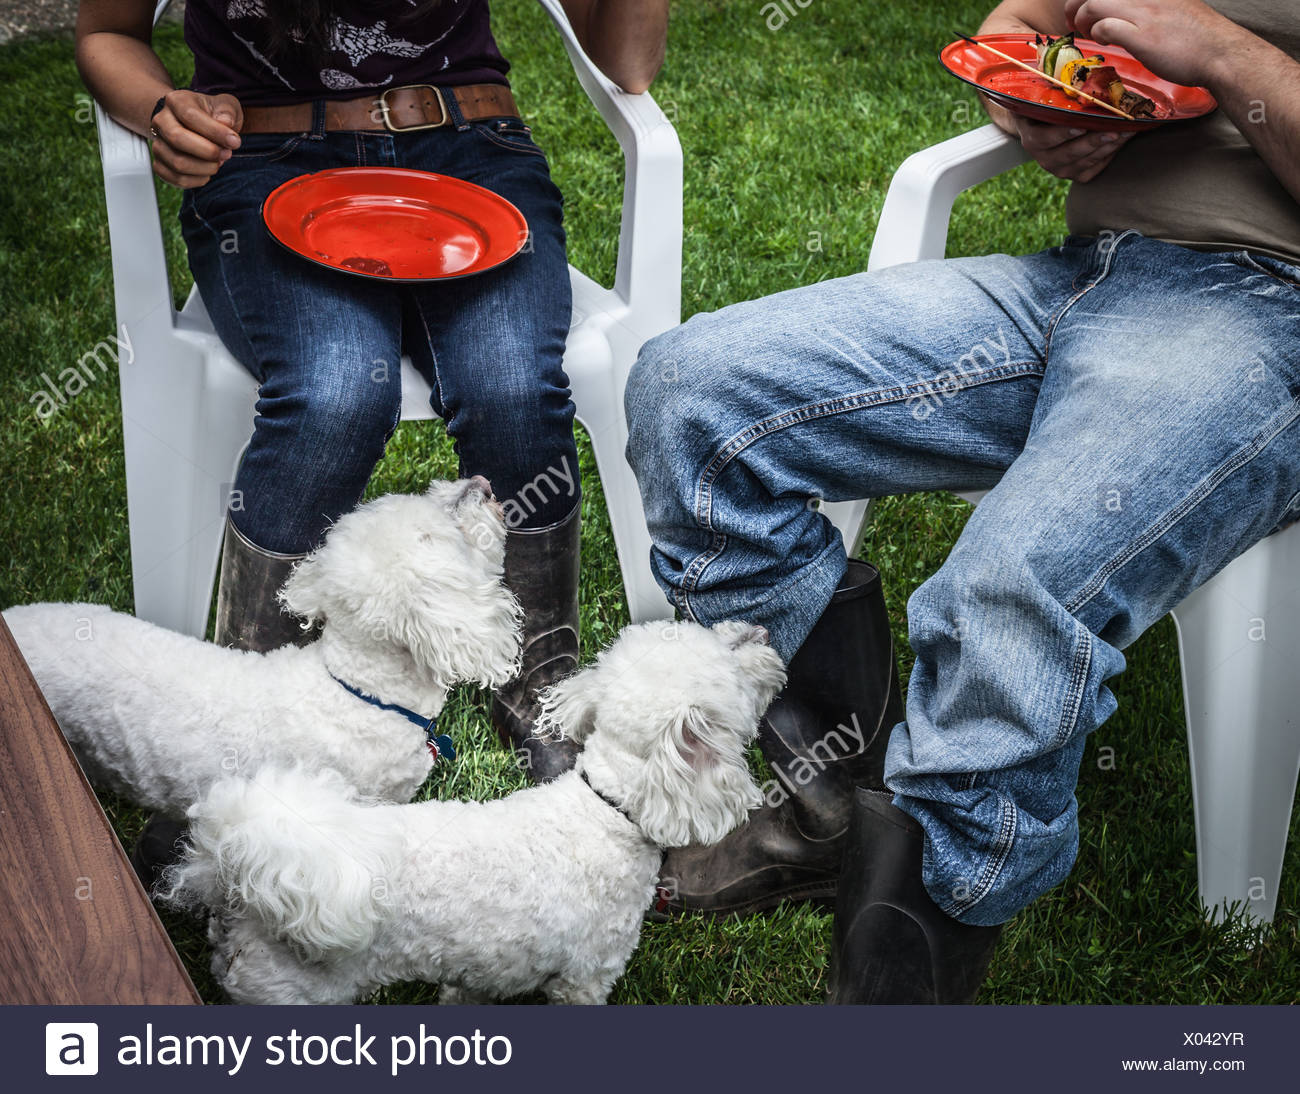 Dogs begging for owners food - Stock Image